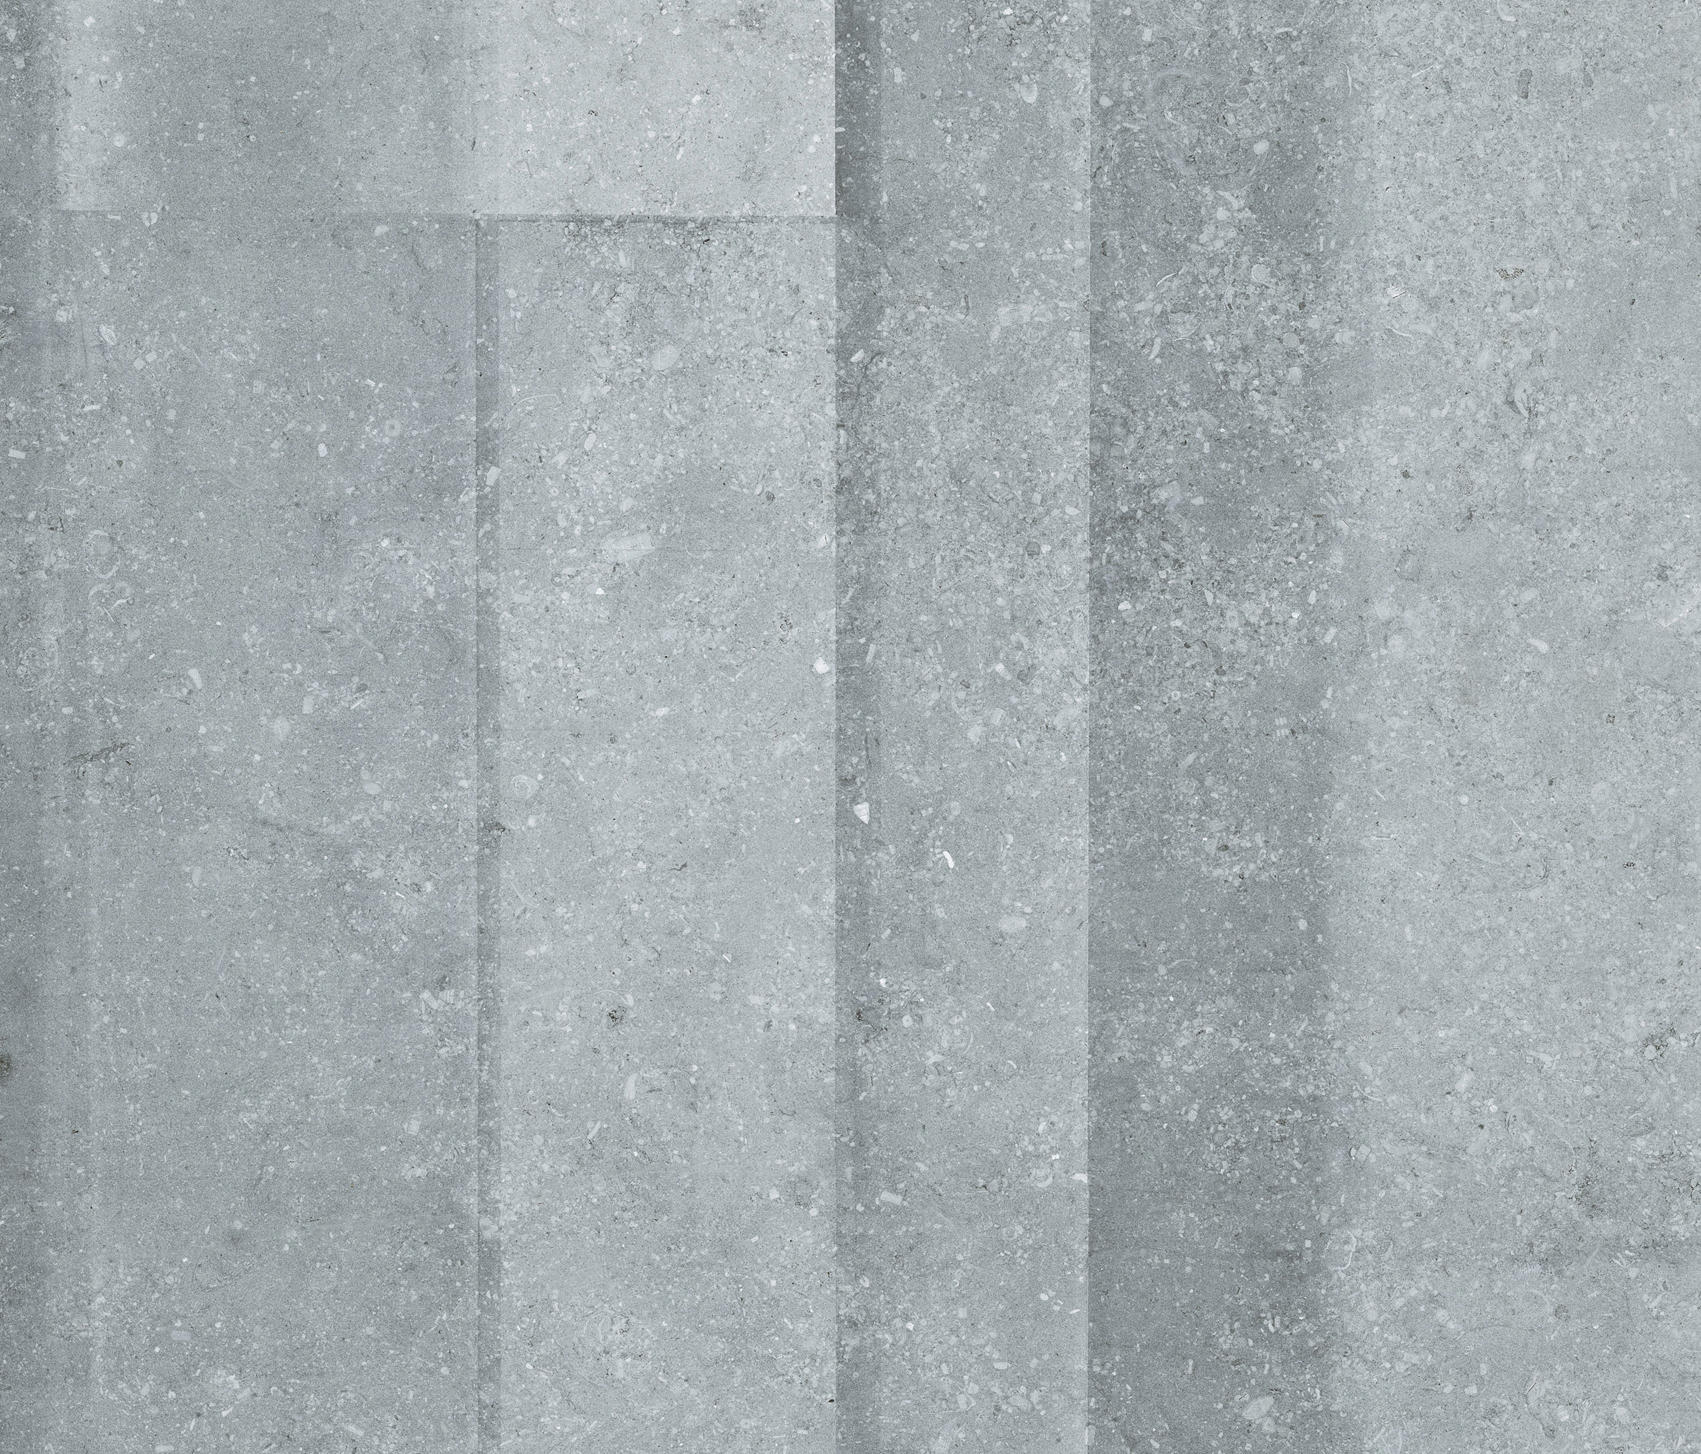 Bluestone floor tiles from vives cer mica architonic - Vives ceramica ...